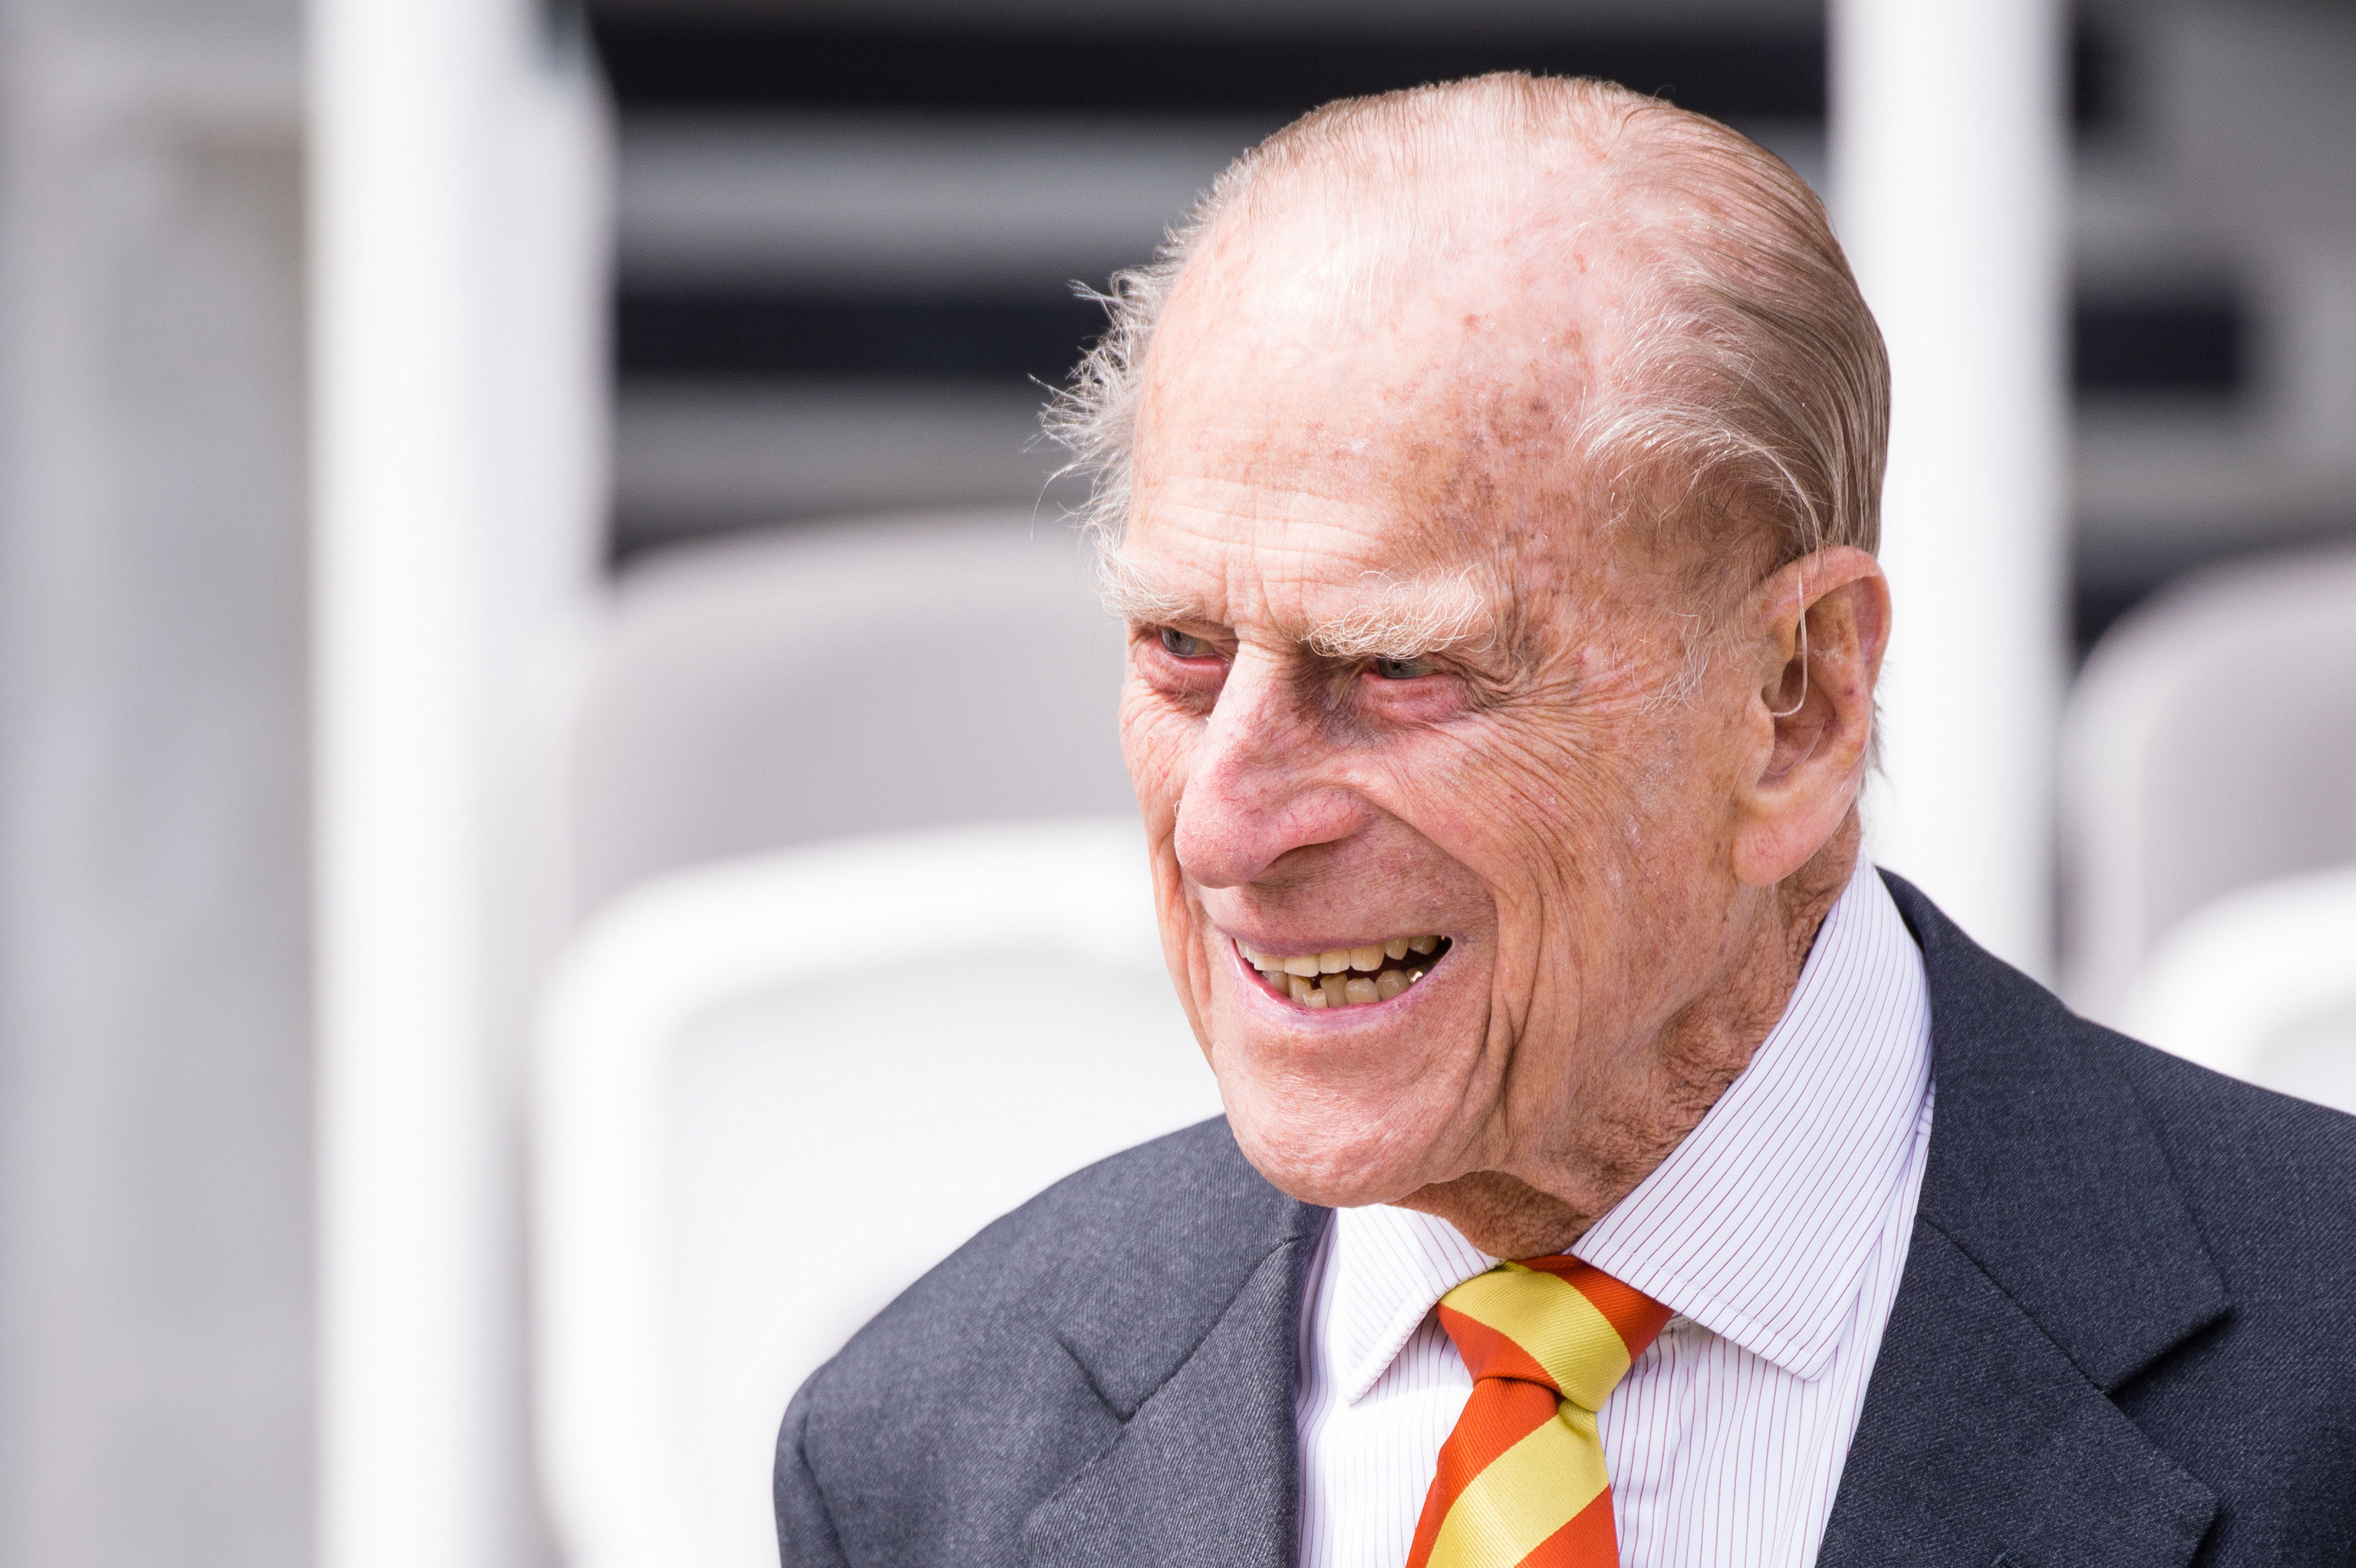 Queen Elizabeth's Husband Prince Philip Announces Retirement From Public Engagements